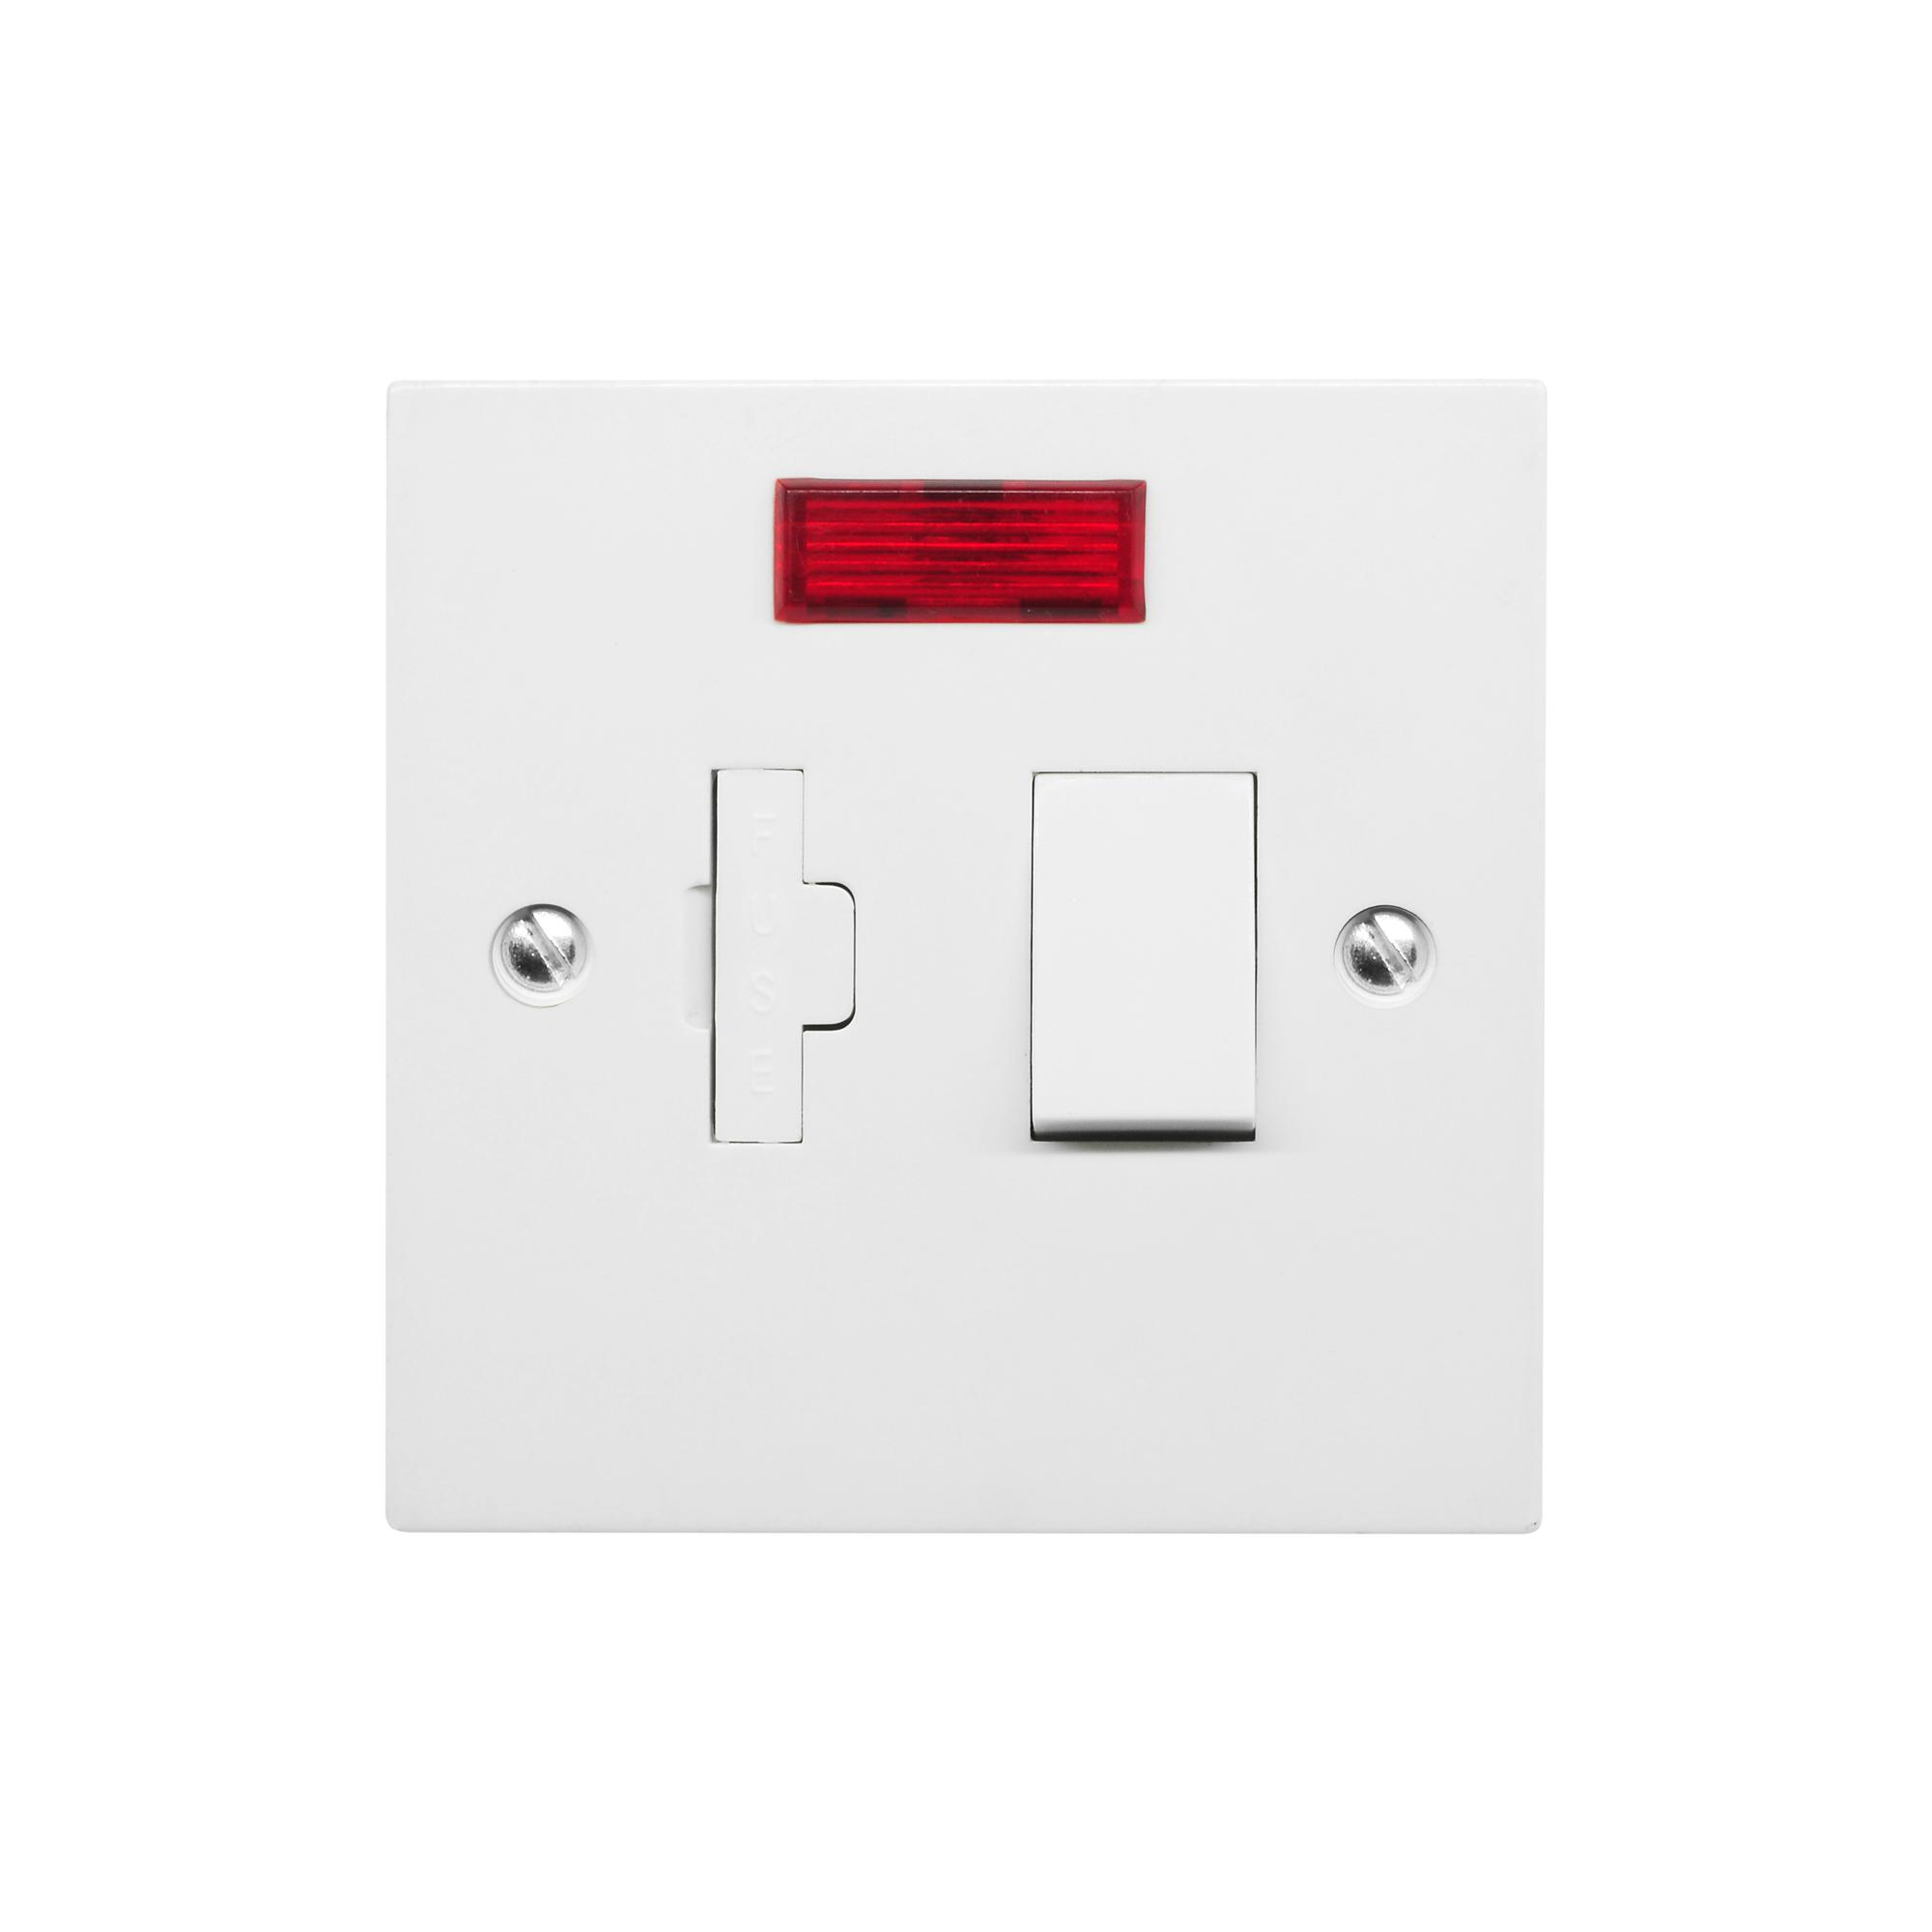 Home Electrical Fuse Box Dimensions Wiring Diagrams Get Free Image About Circuit Breaker Electric Types